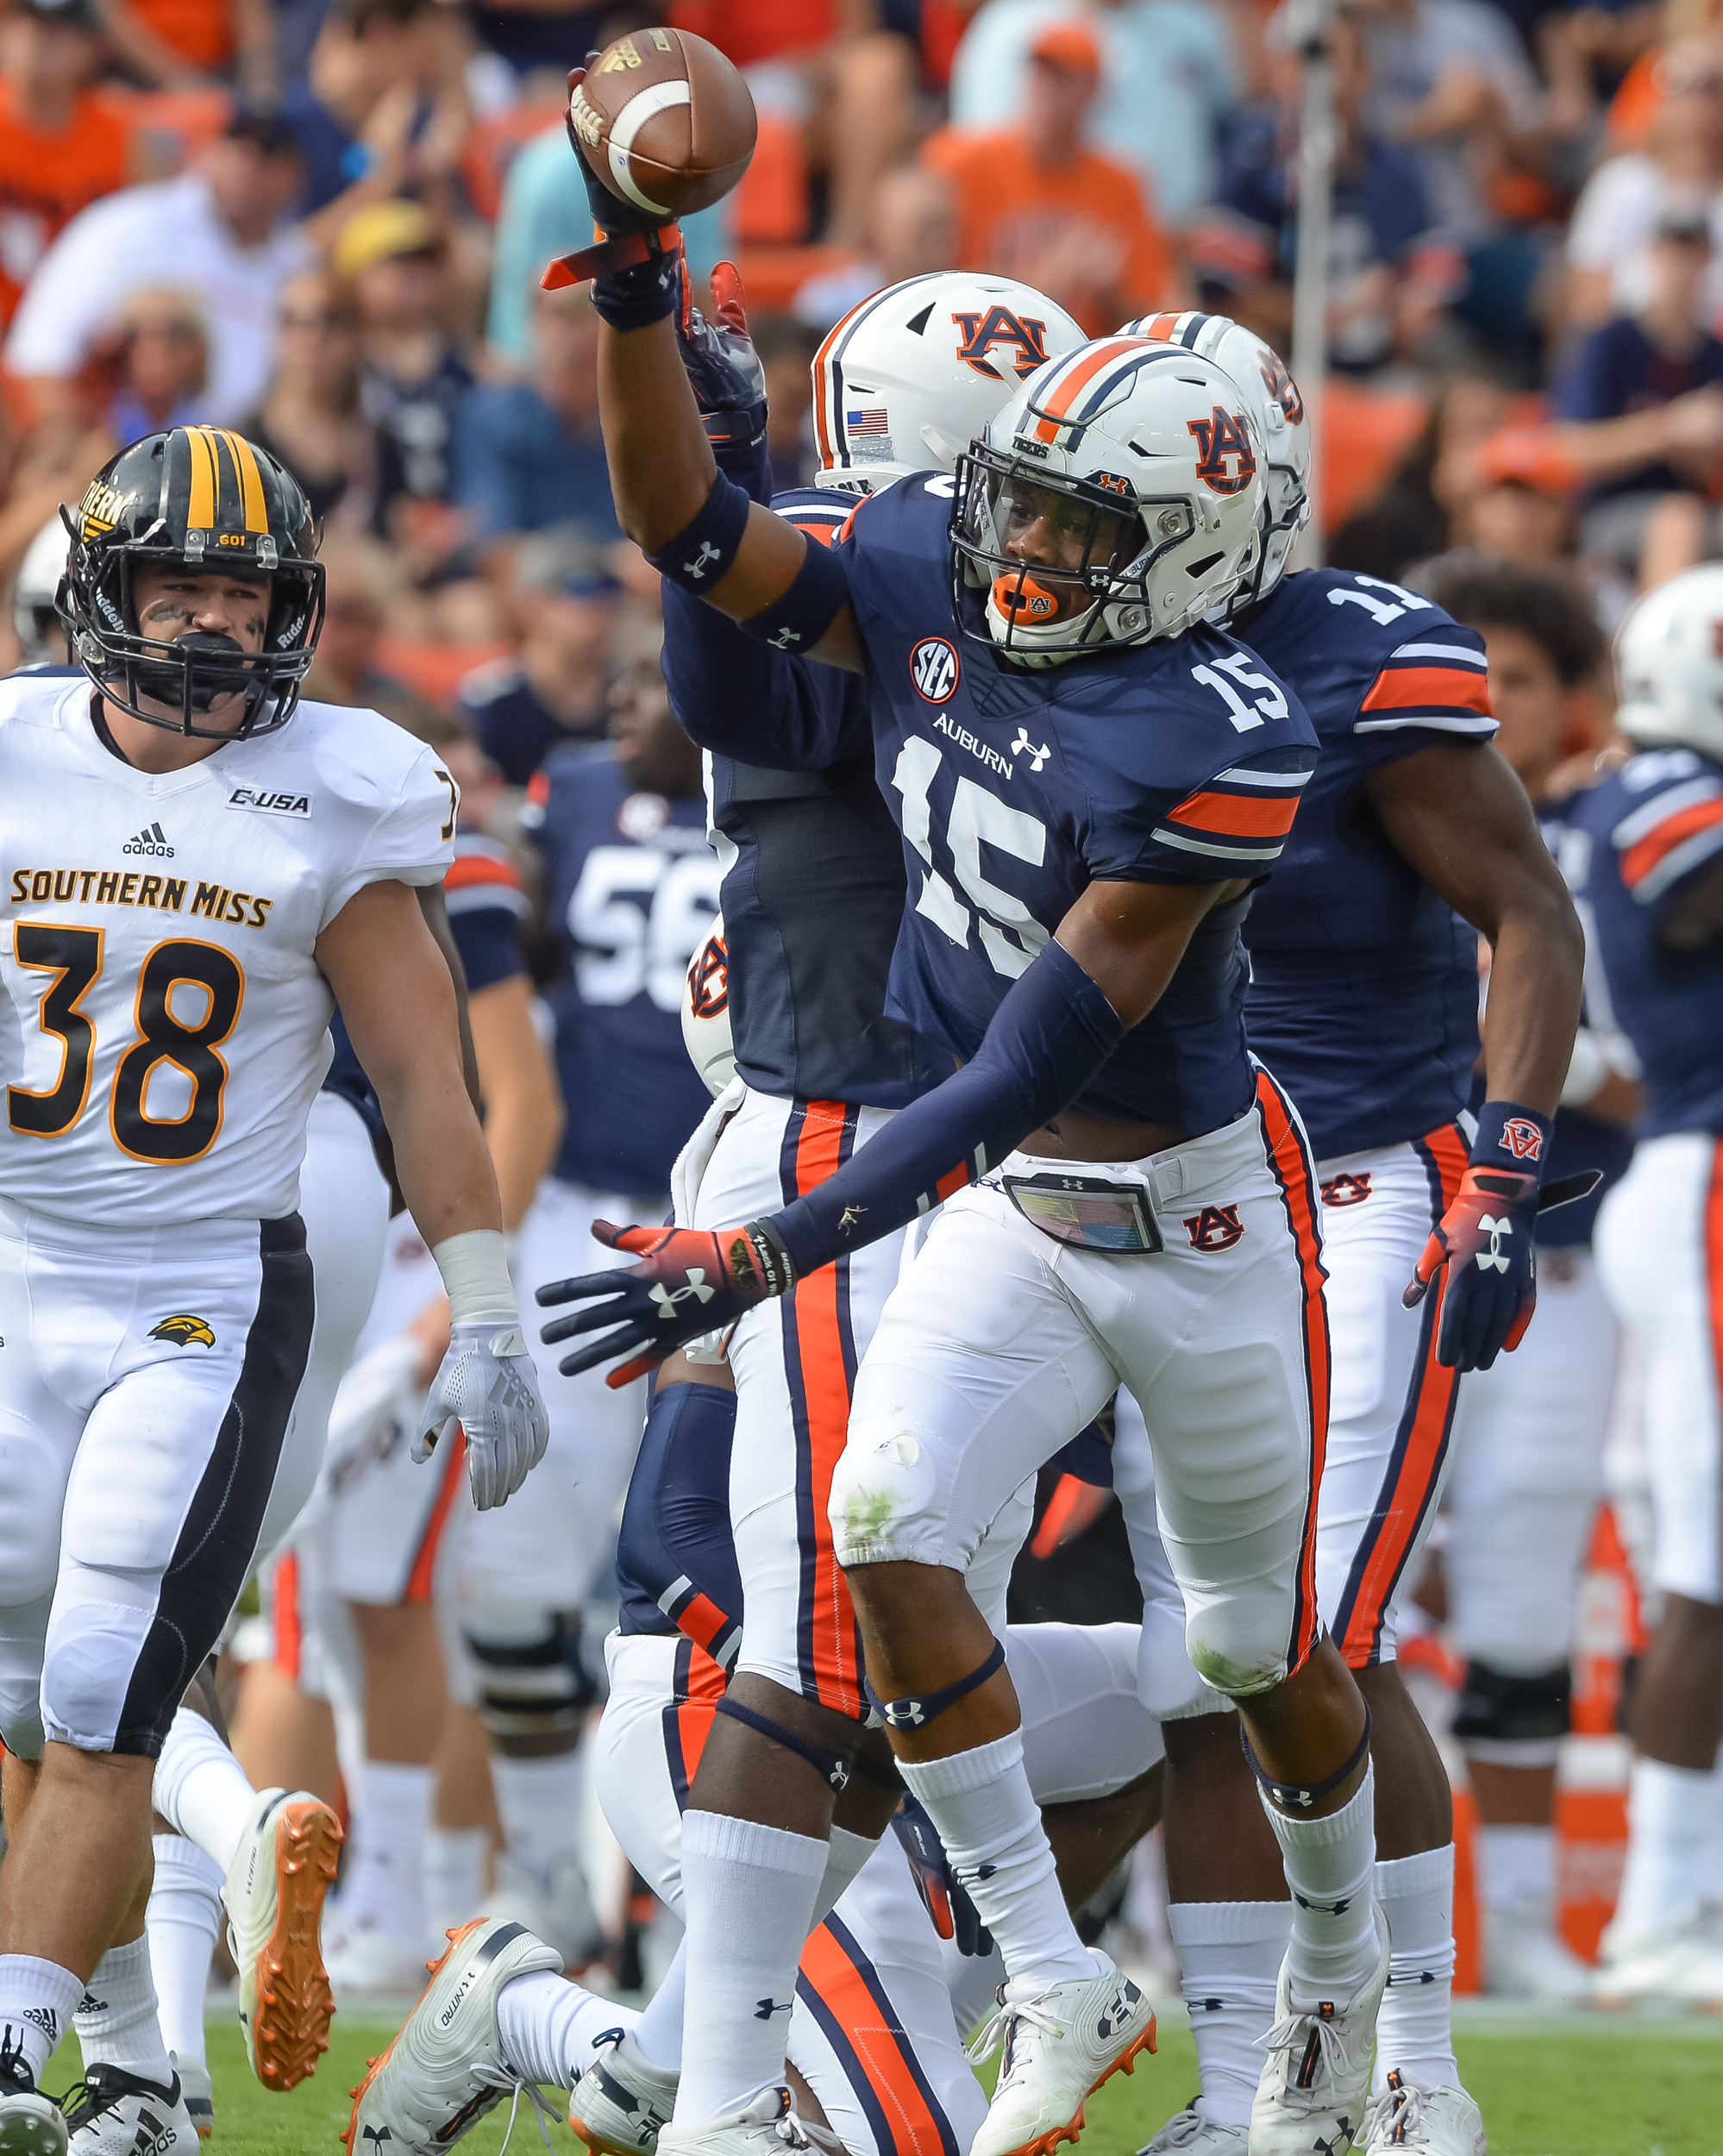 Auburn Tigers defensive back Jordyn Peters (15) celebrates a fumble recovery during the first half of Saturday's game, at Jordan Hare Stadium in Auburn AL. Daily Mountain Eagle -  Jeff Johnsey